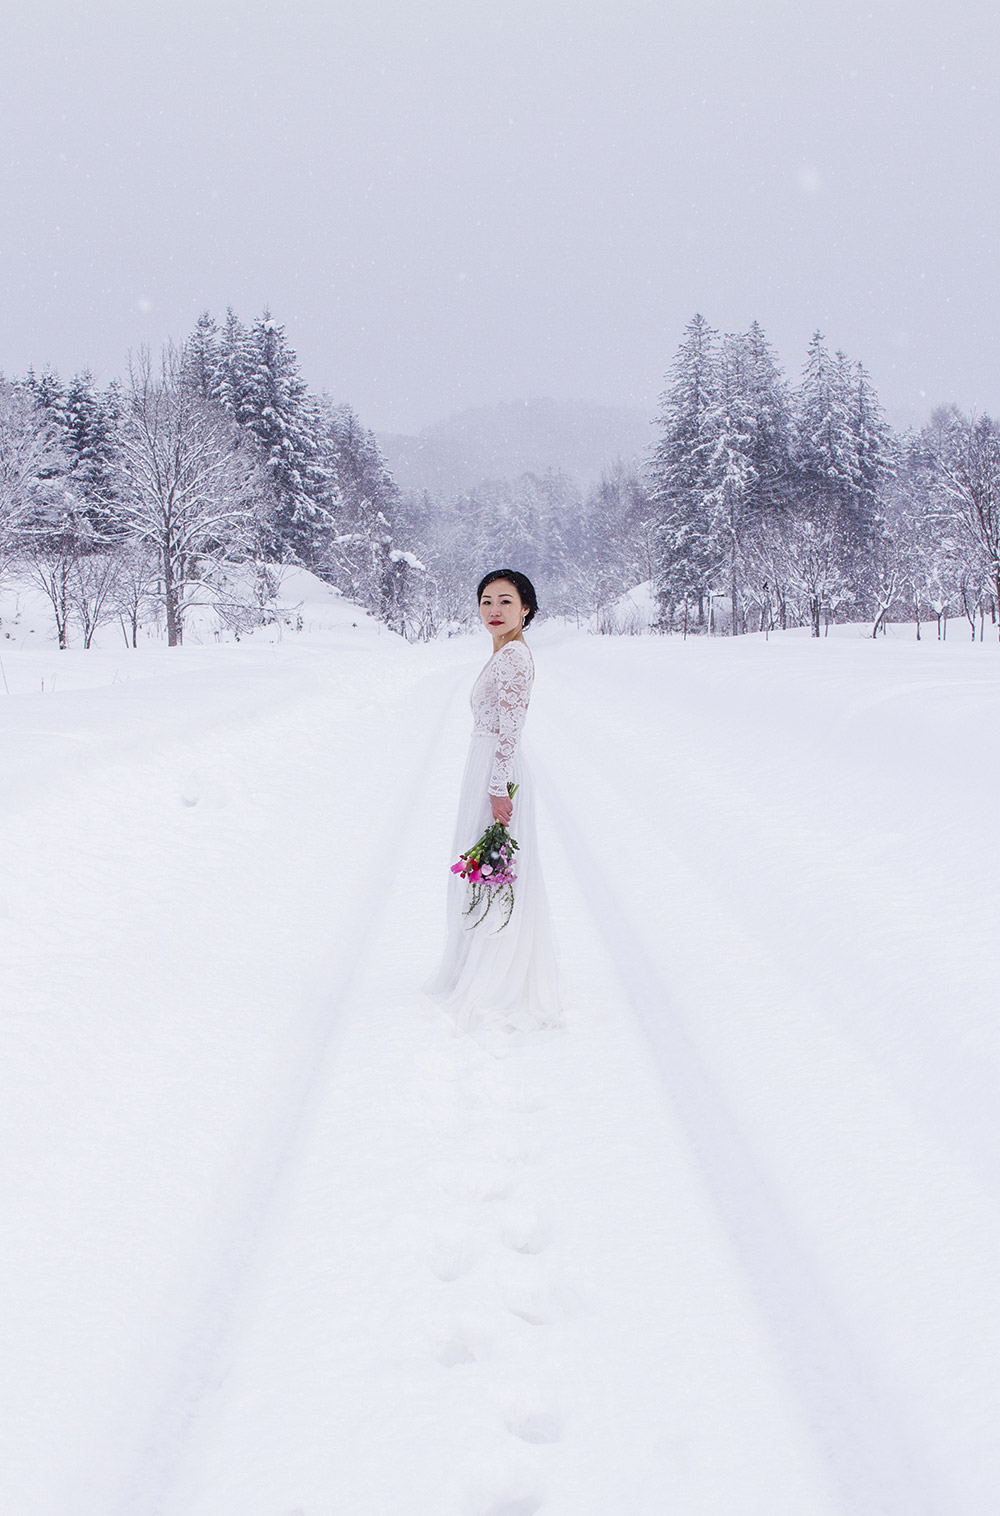 Destination bridal portraits in Japan. Photo by Niseko Photography. www.theweddingnotebook.com